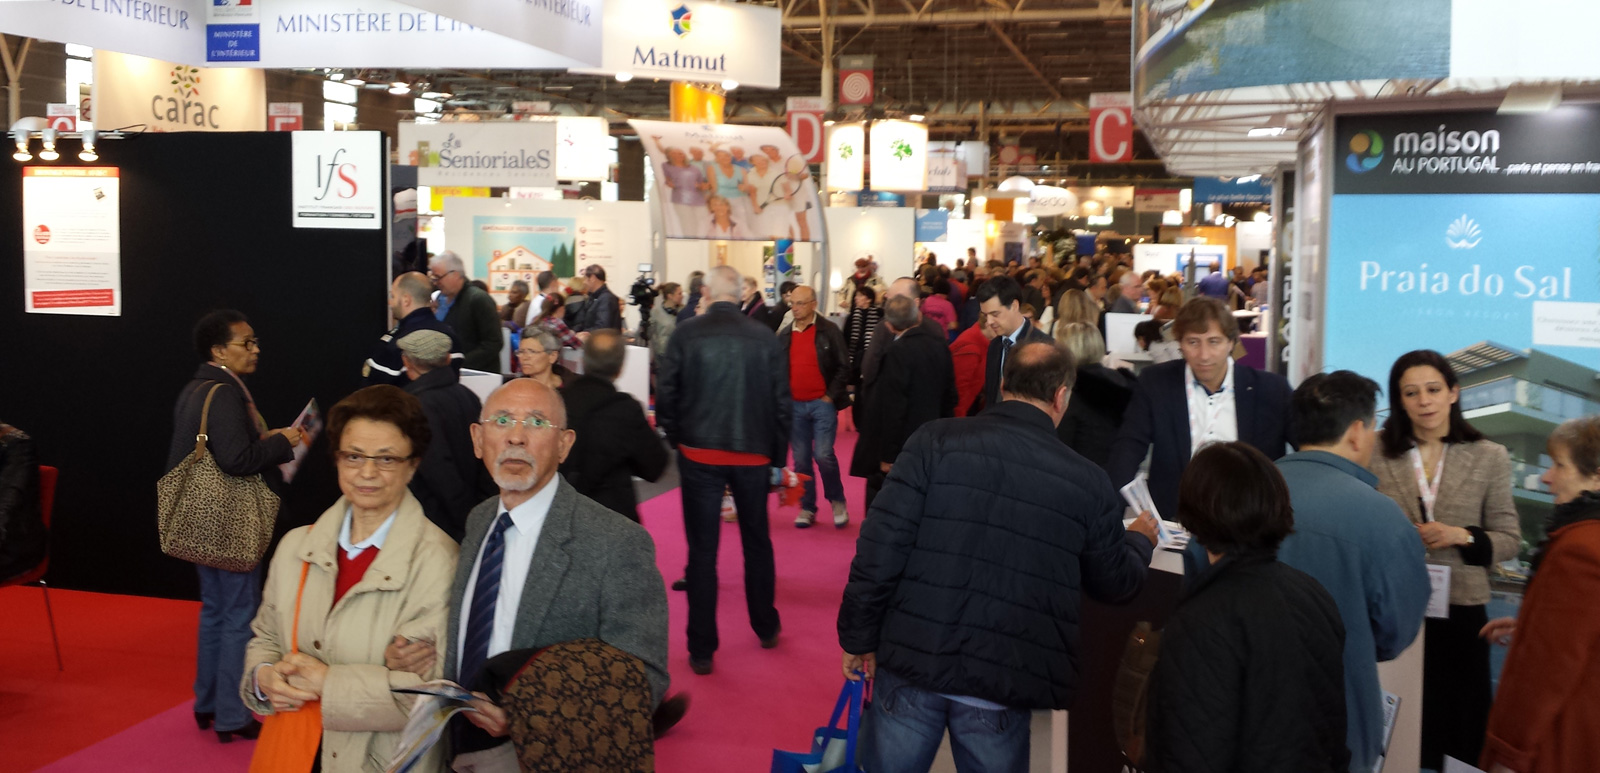 salon des seniors de paris la gazette des salons